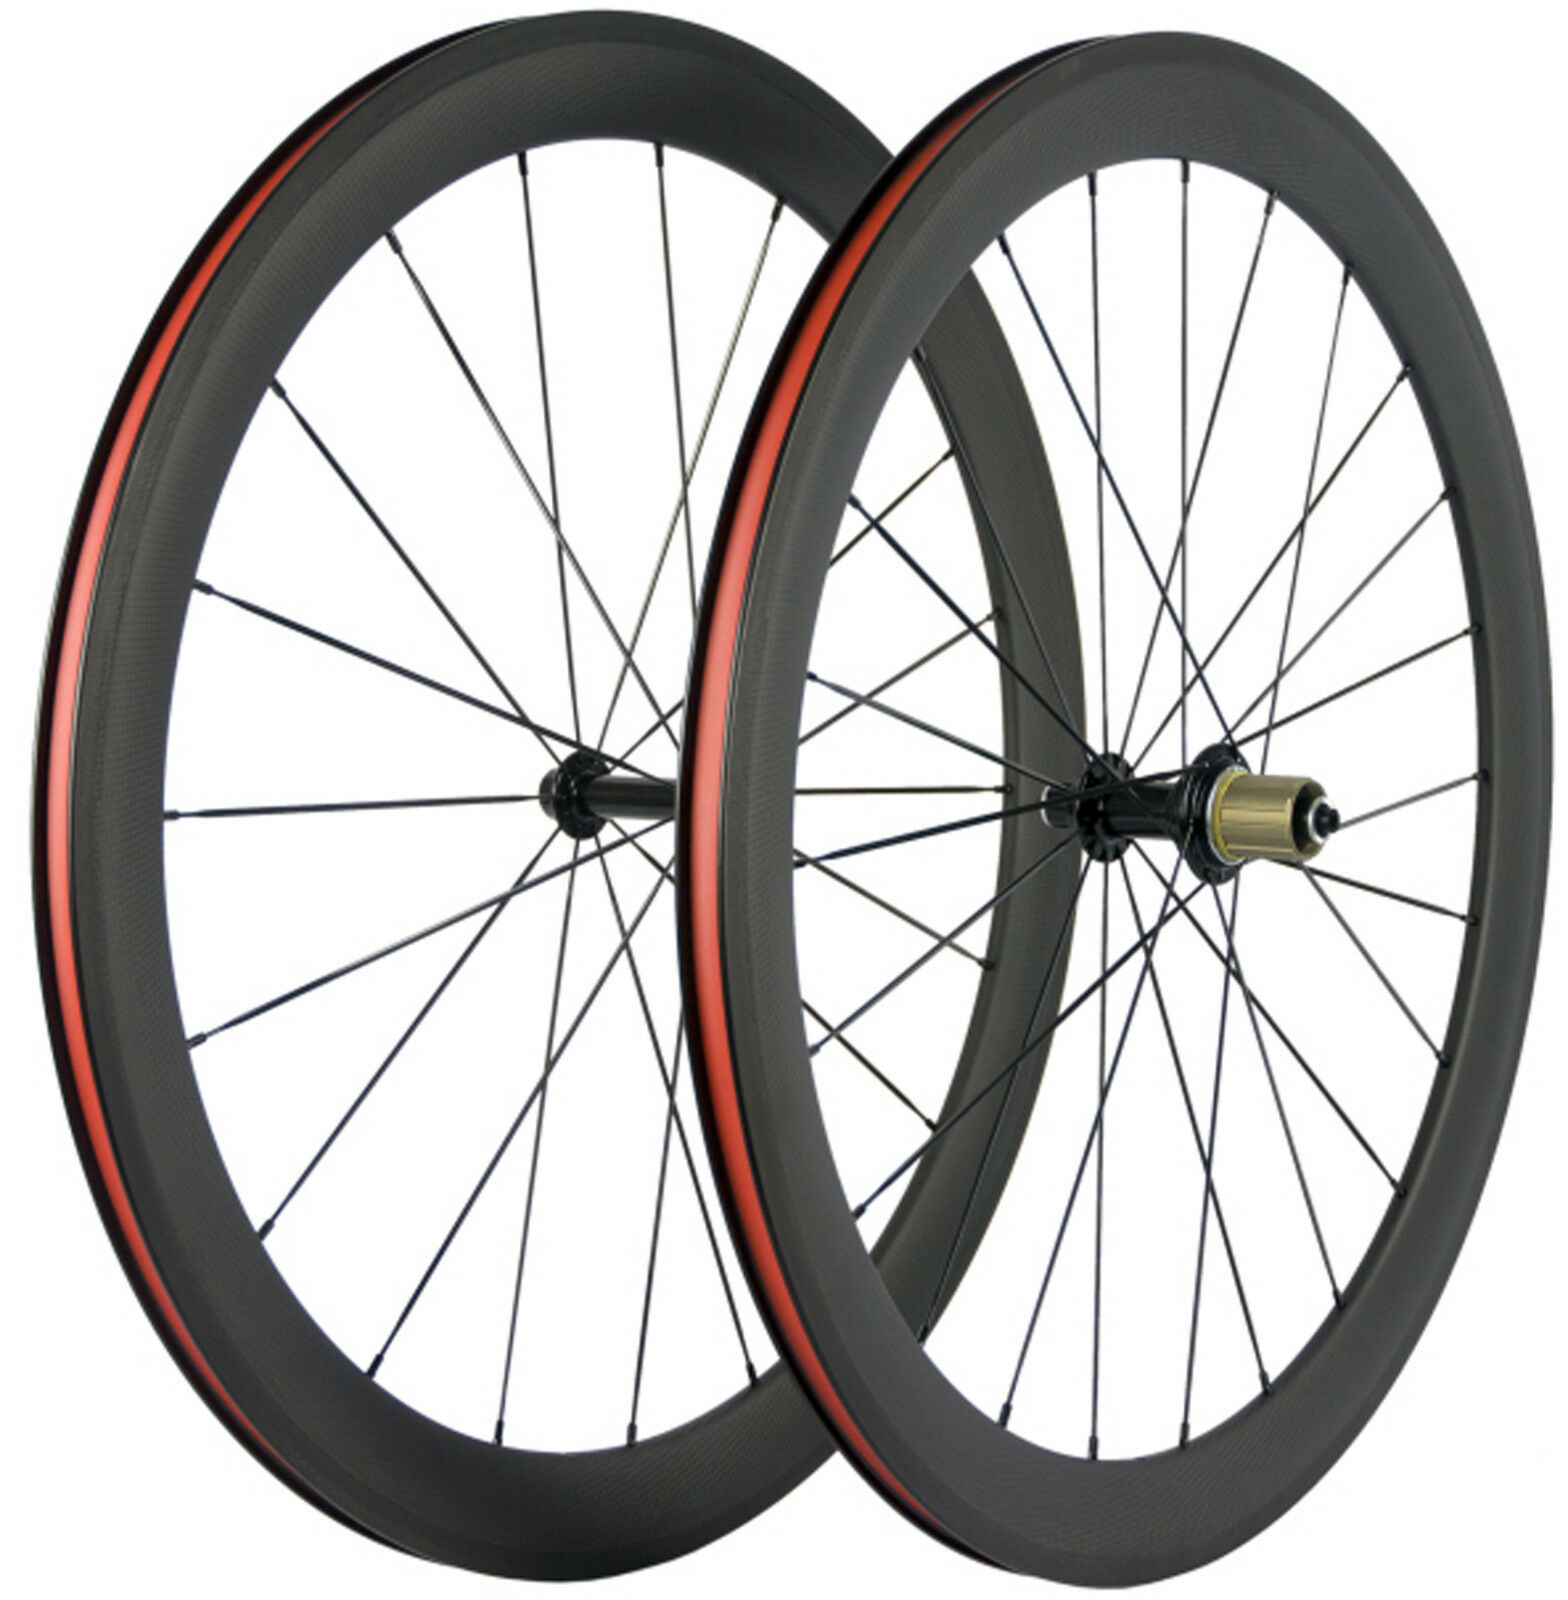 Full Carbon Fiber Wheels 50mm  Clincher Bicycle Wheelset 700C Bike For Shimano  free shipping & exchanges.